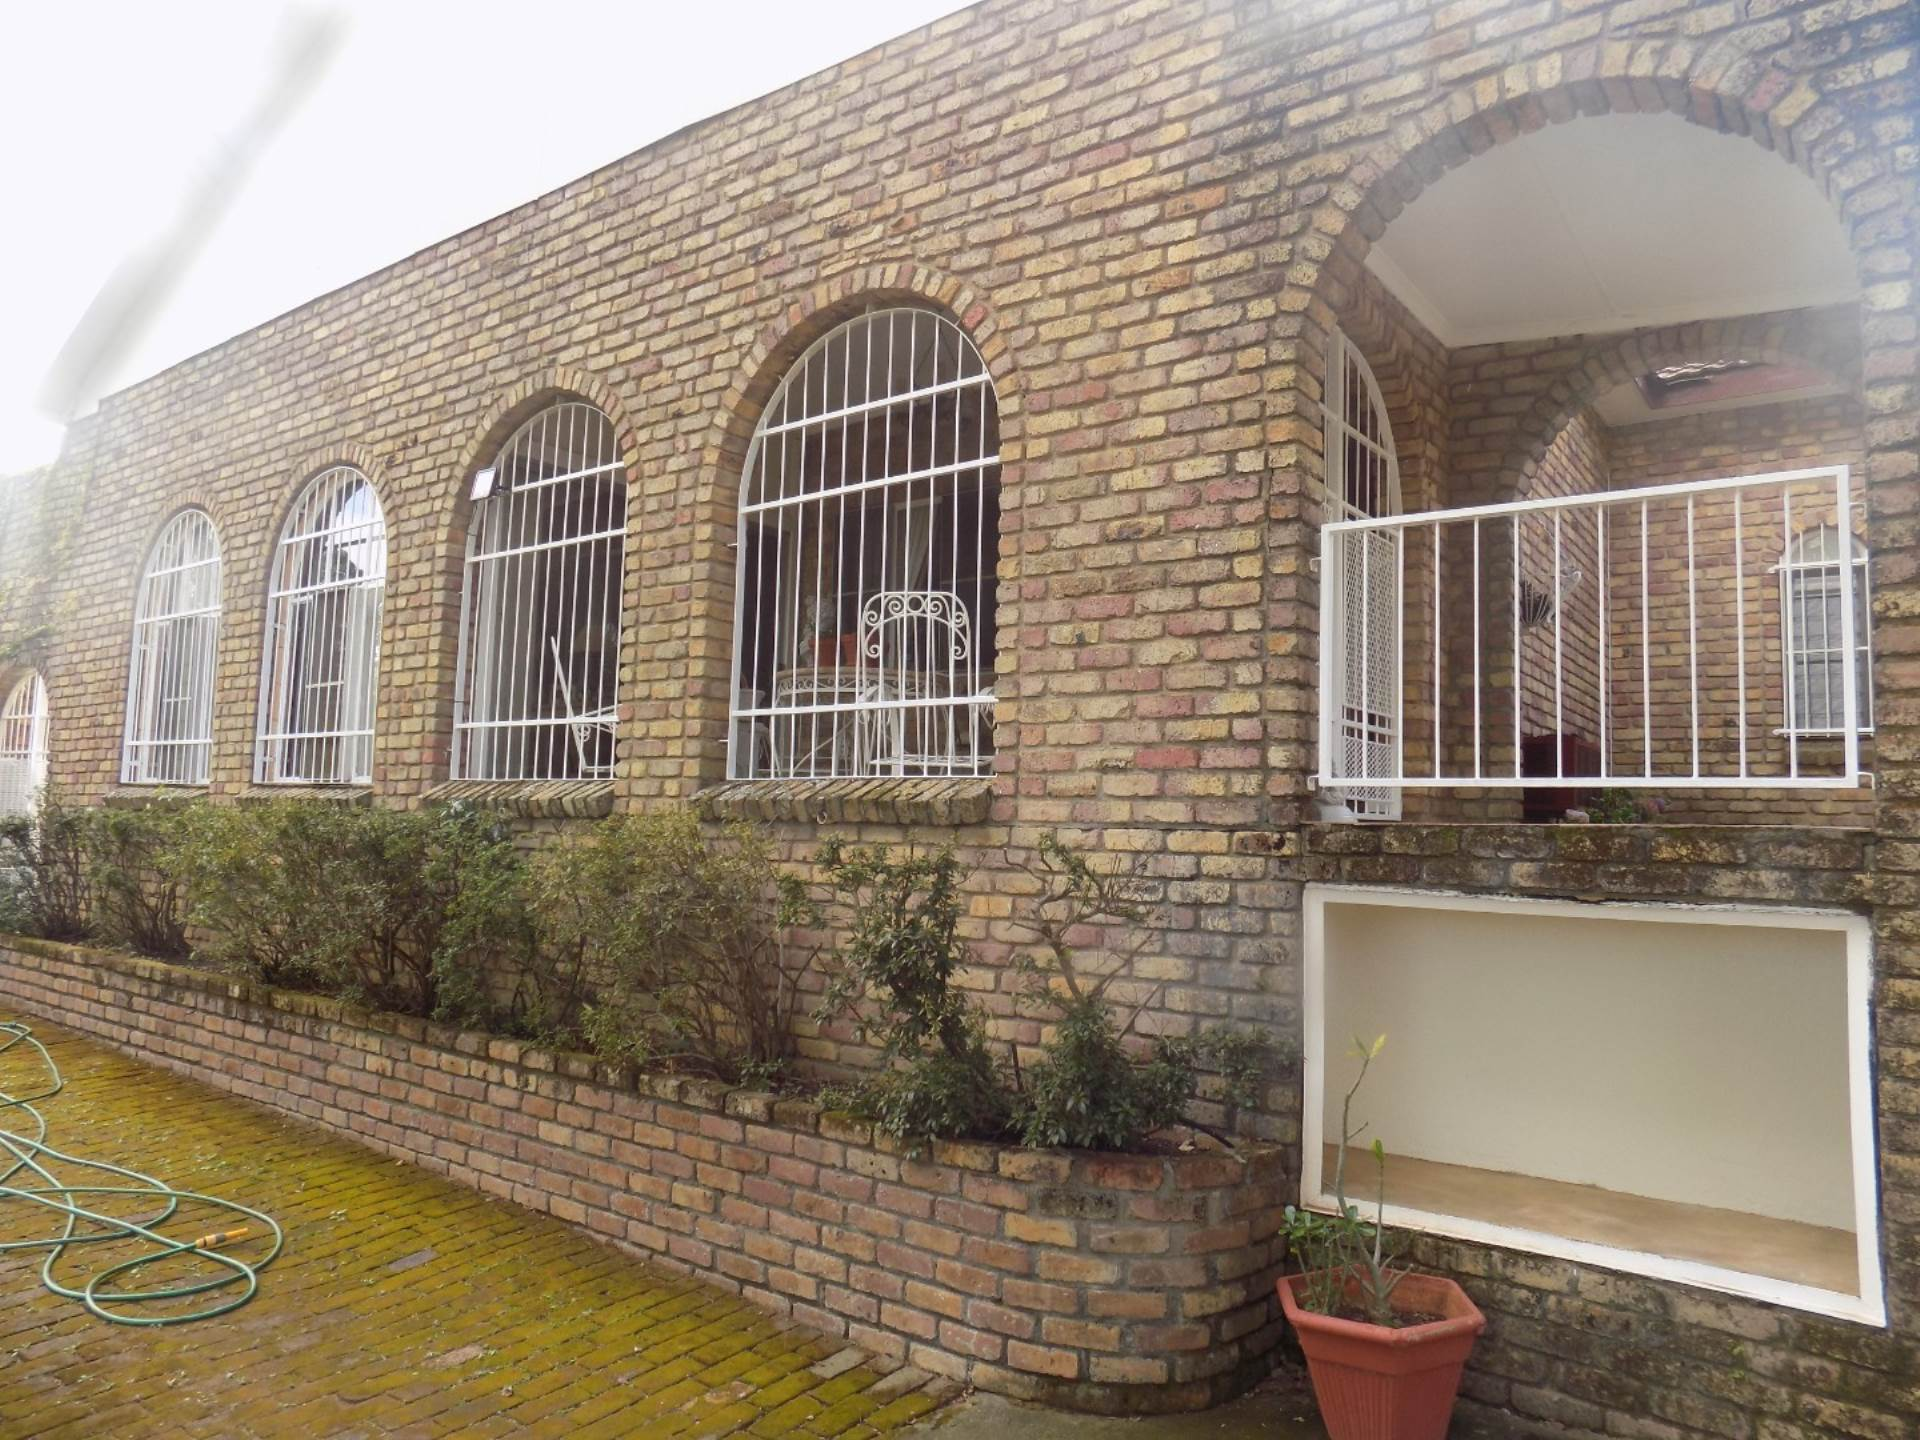 3 BedroomHouse For Sale In Duiwelskloof